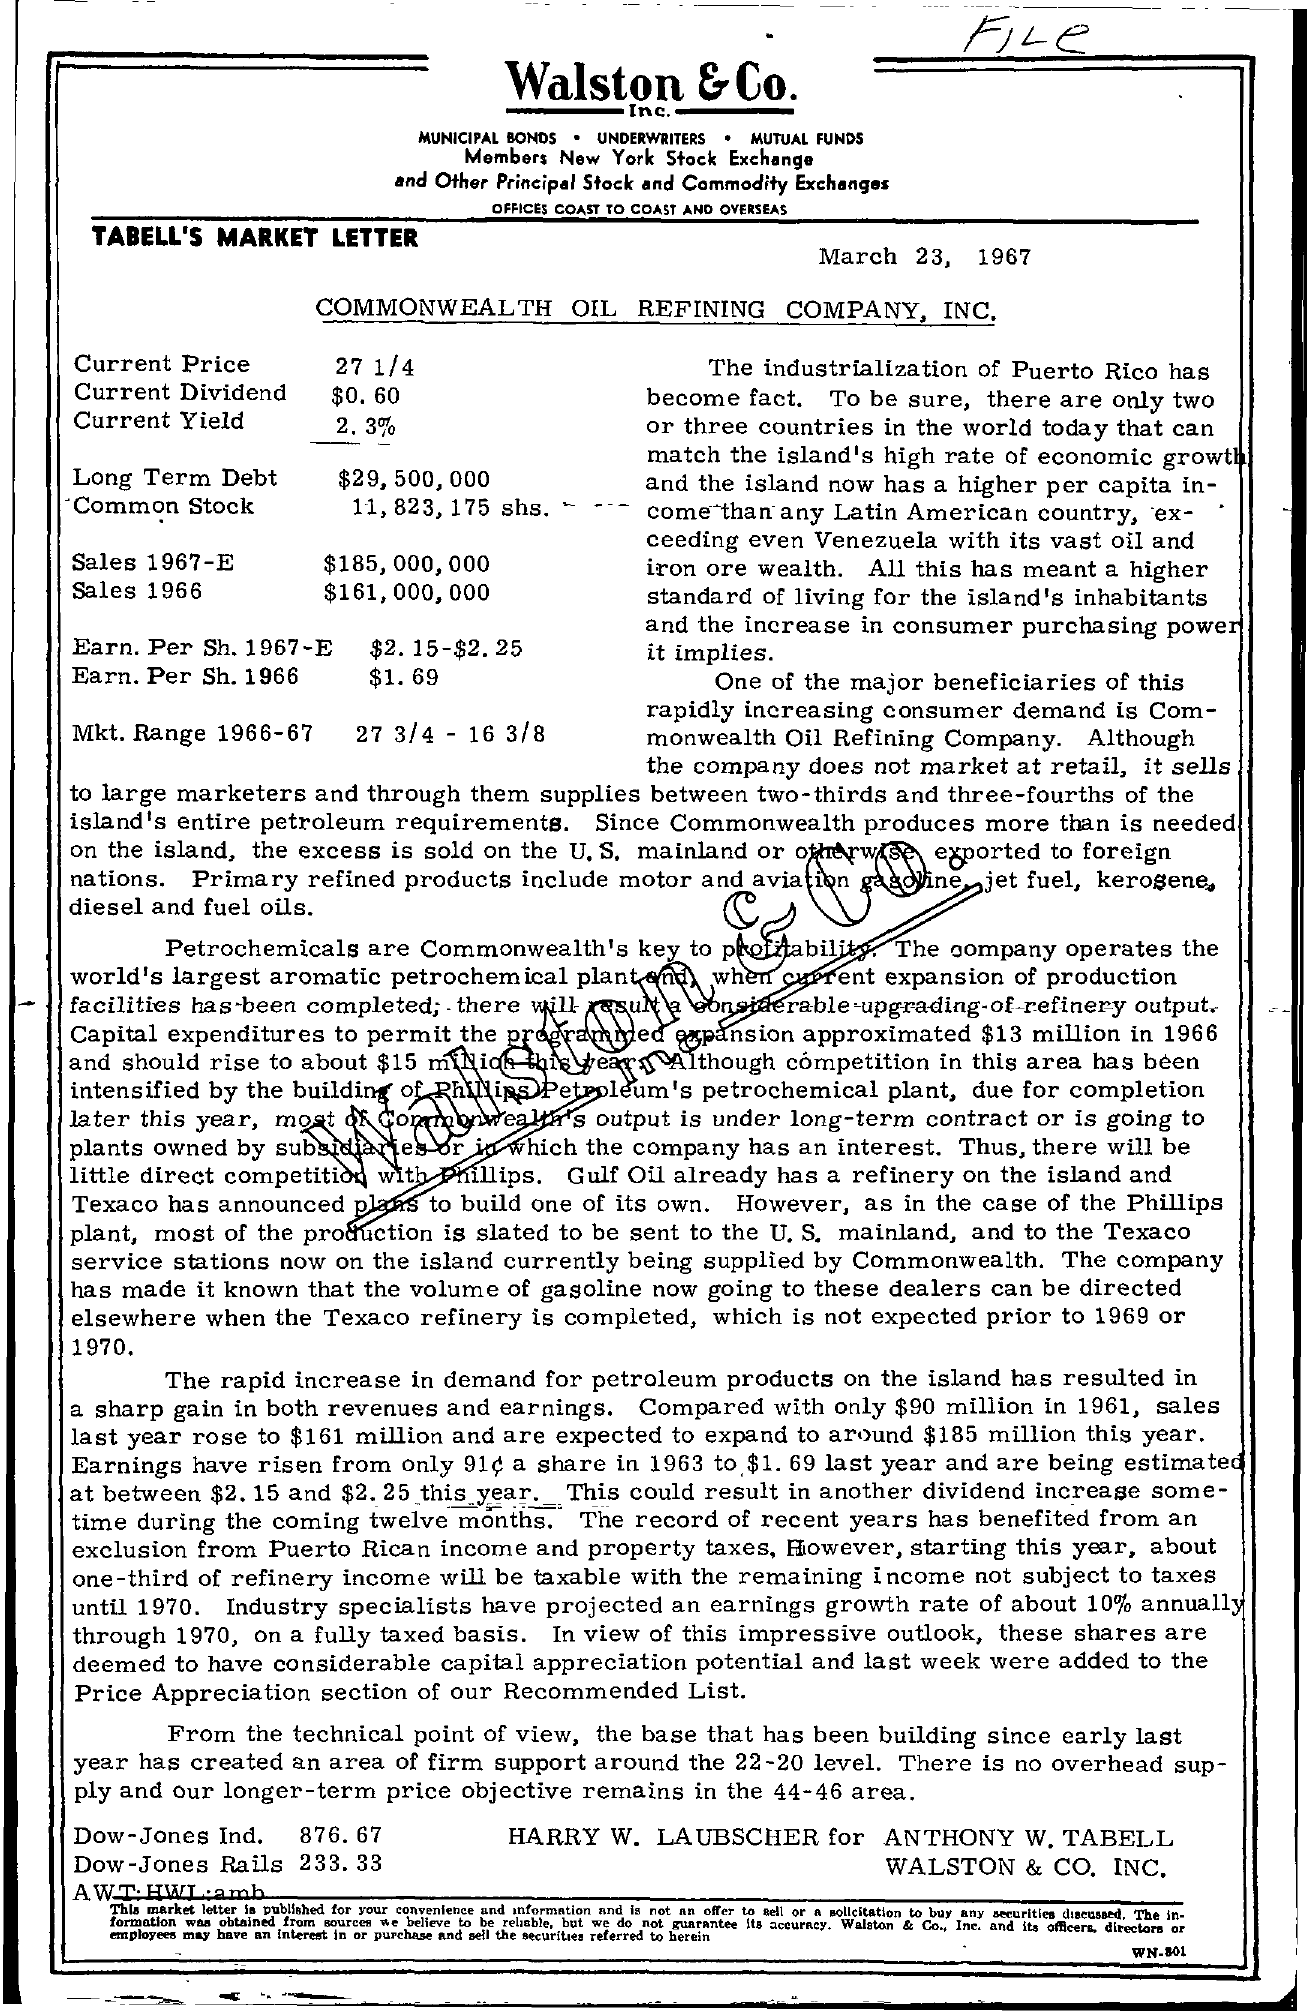 Tabell's Market Letter - March 23, 1967